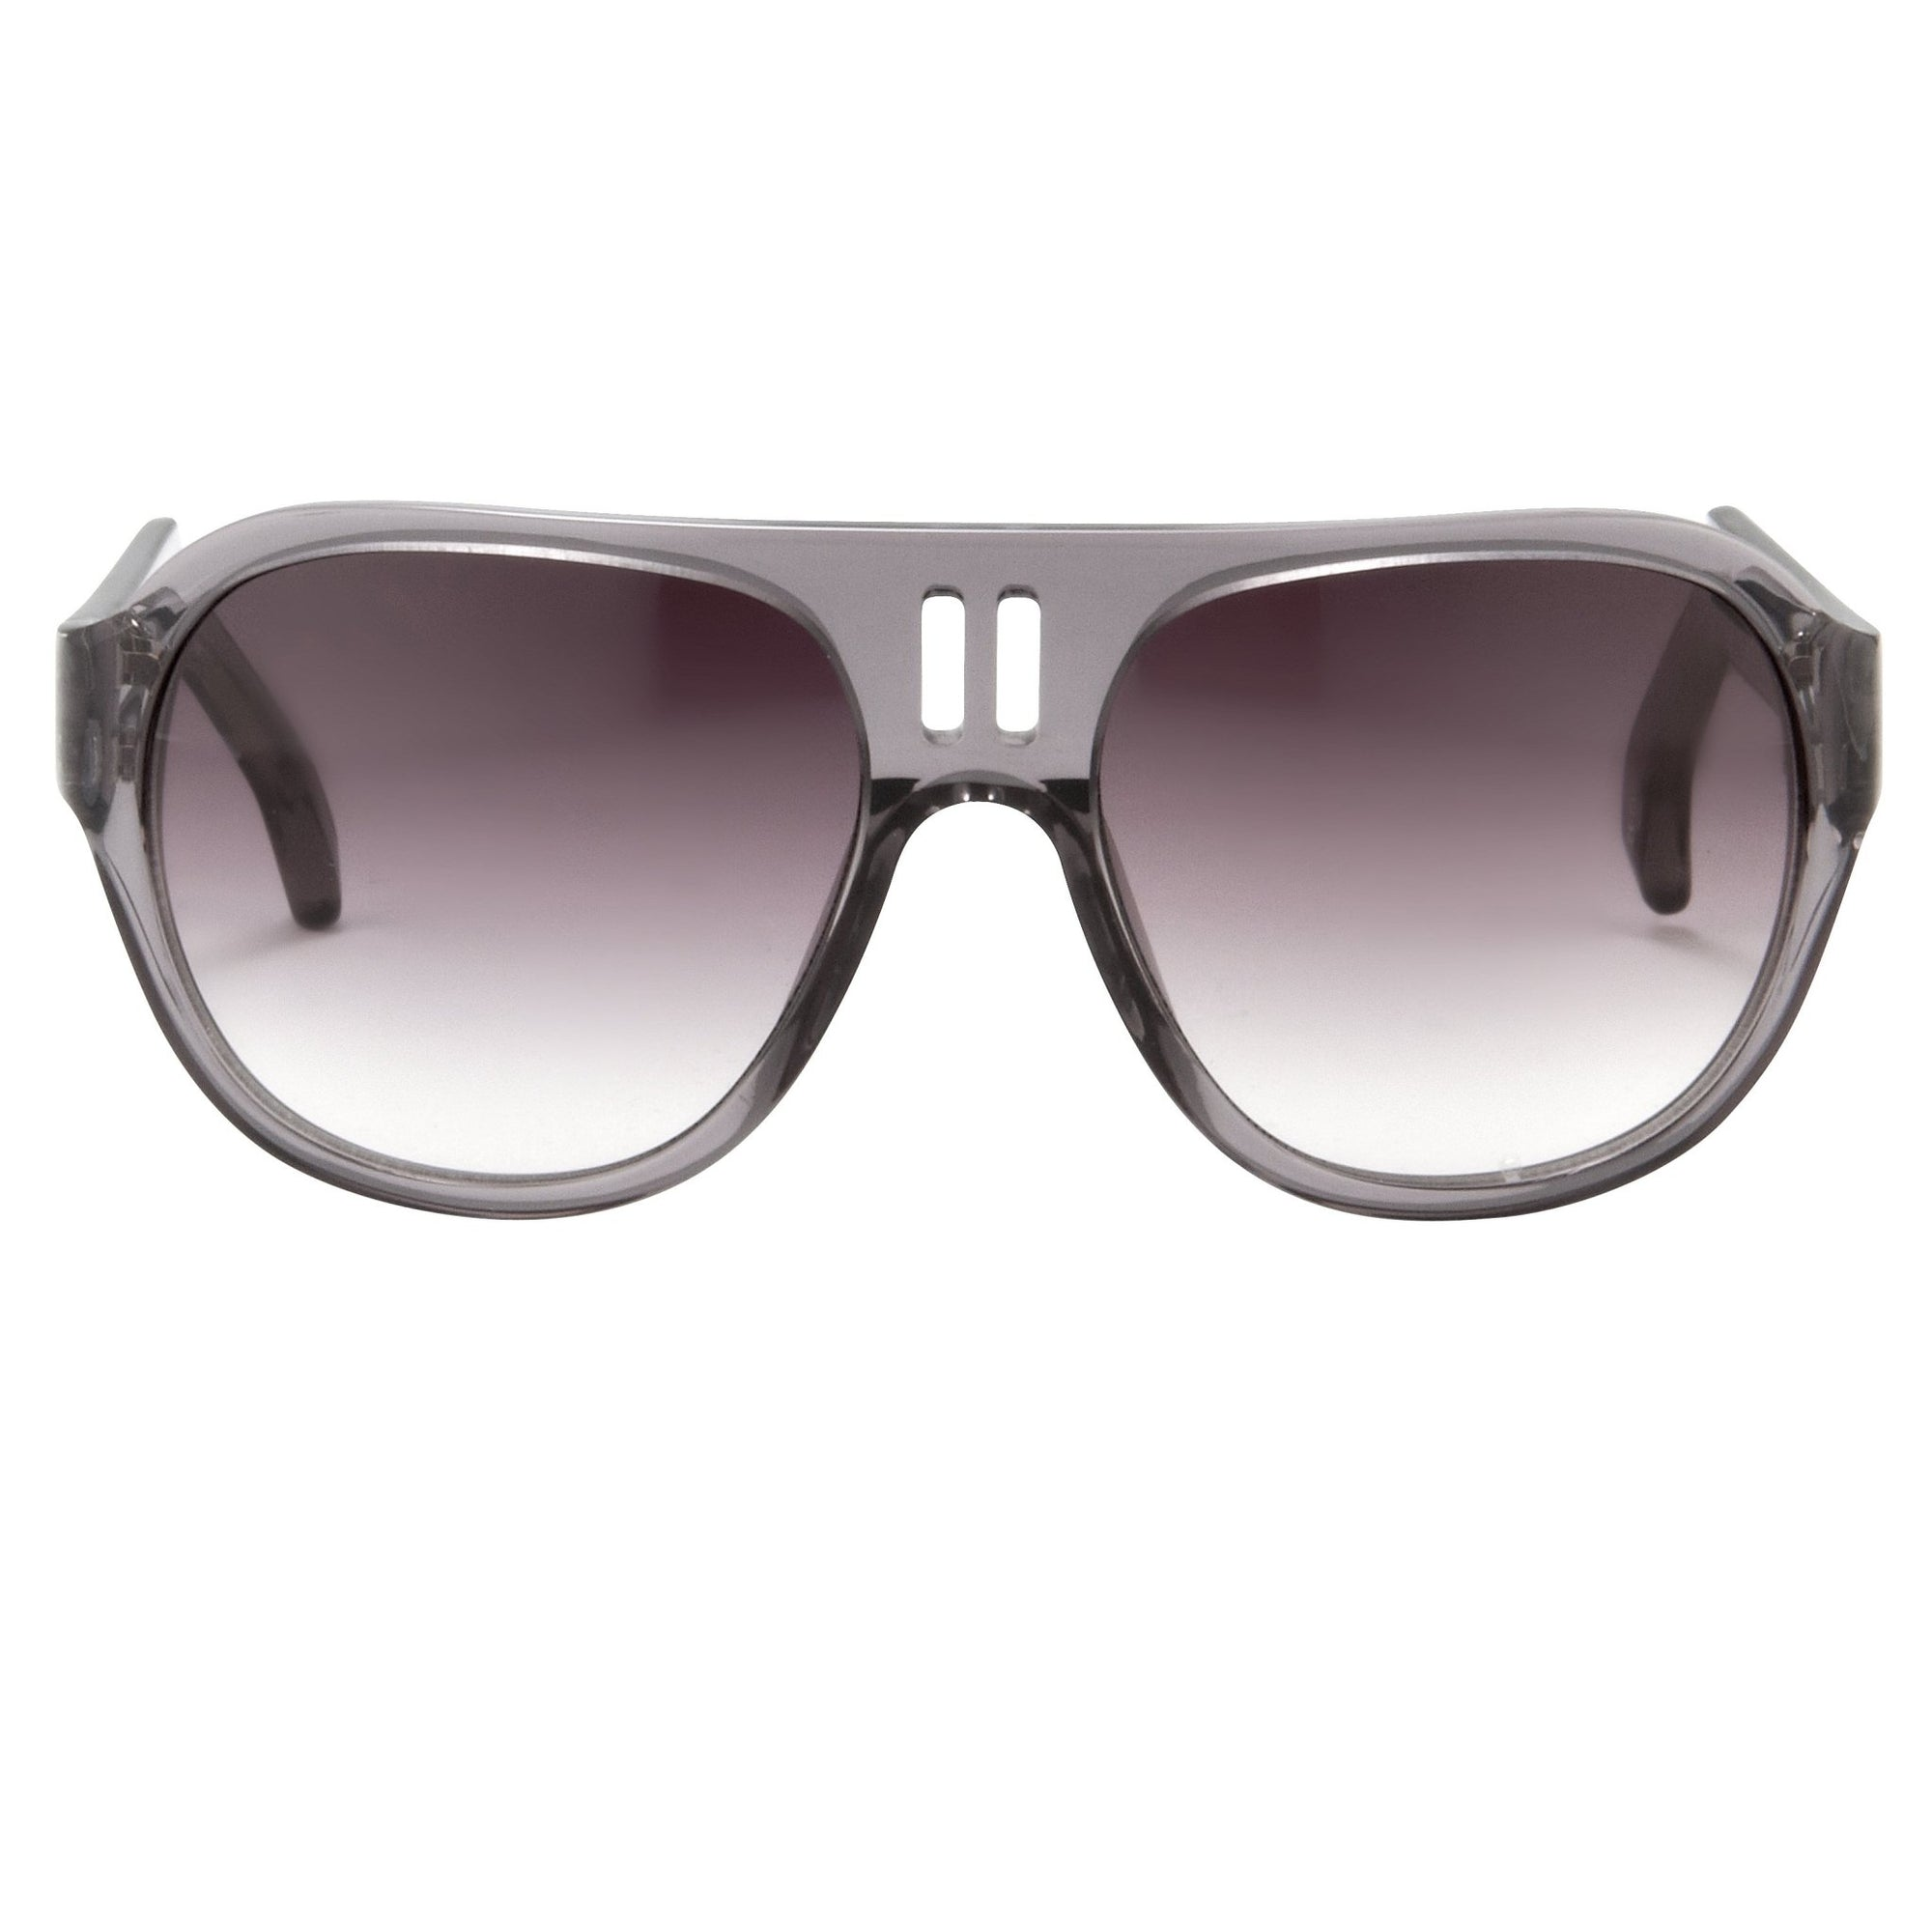 Boris Bidjan Saberi Sunglasses Translucent Slate With Purple Graduated Category 3 Lenses BBS4C4SUN - Watches & Crystals